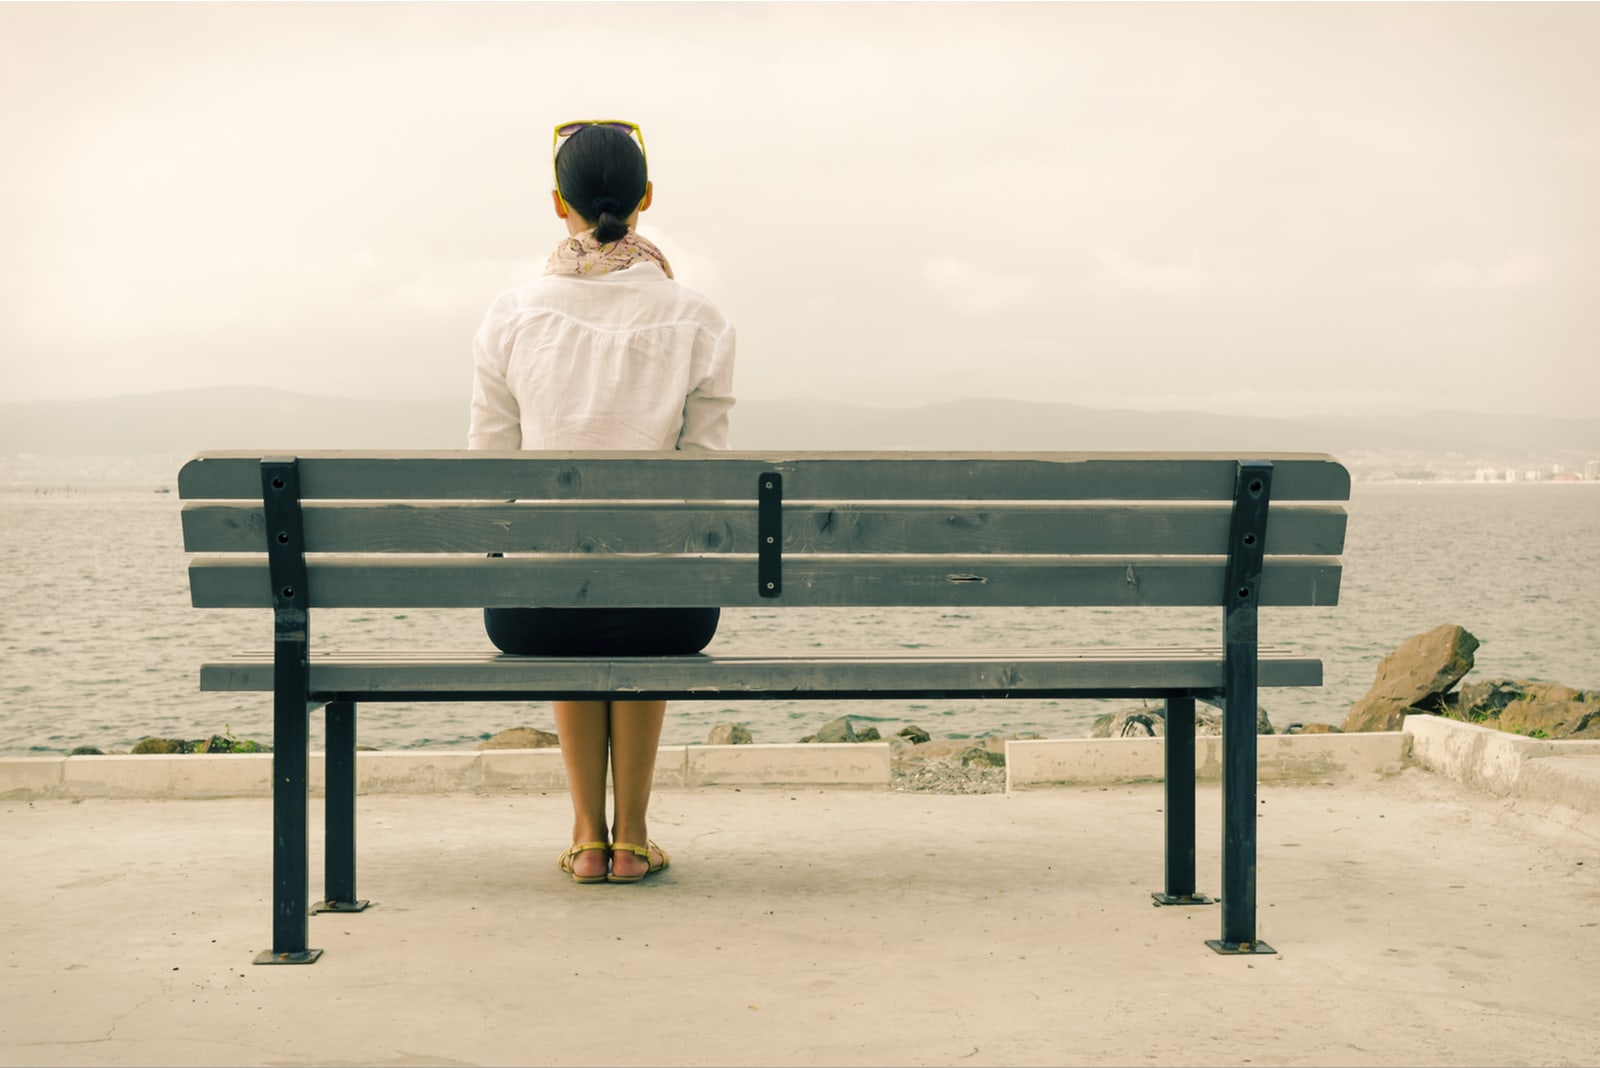 woman sitting alone on the bench